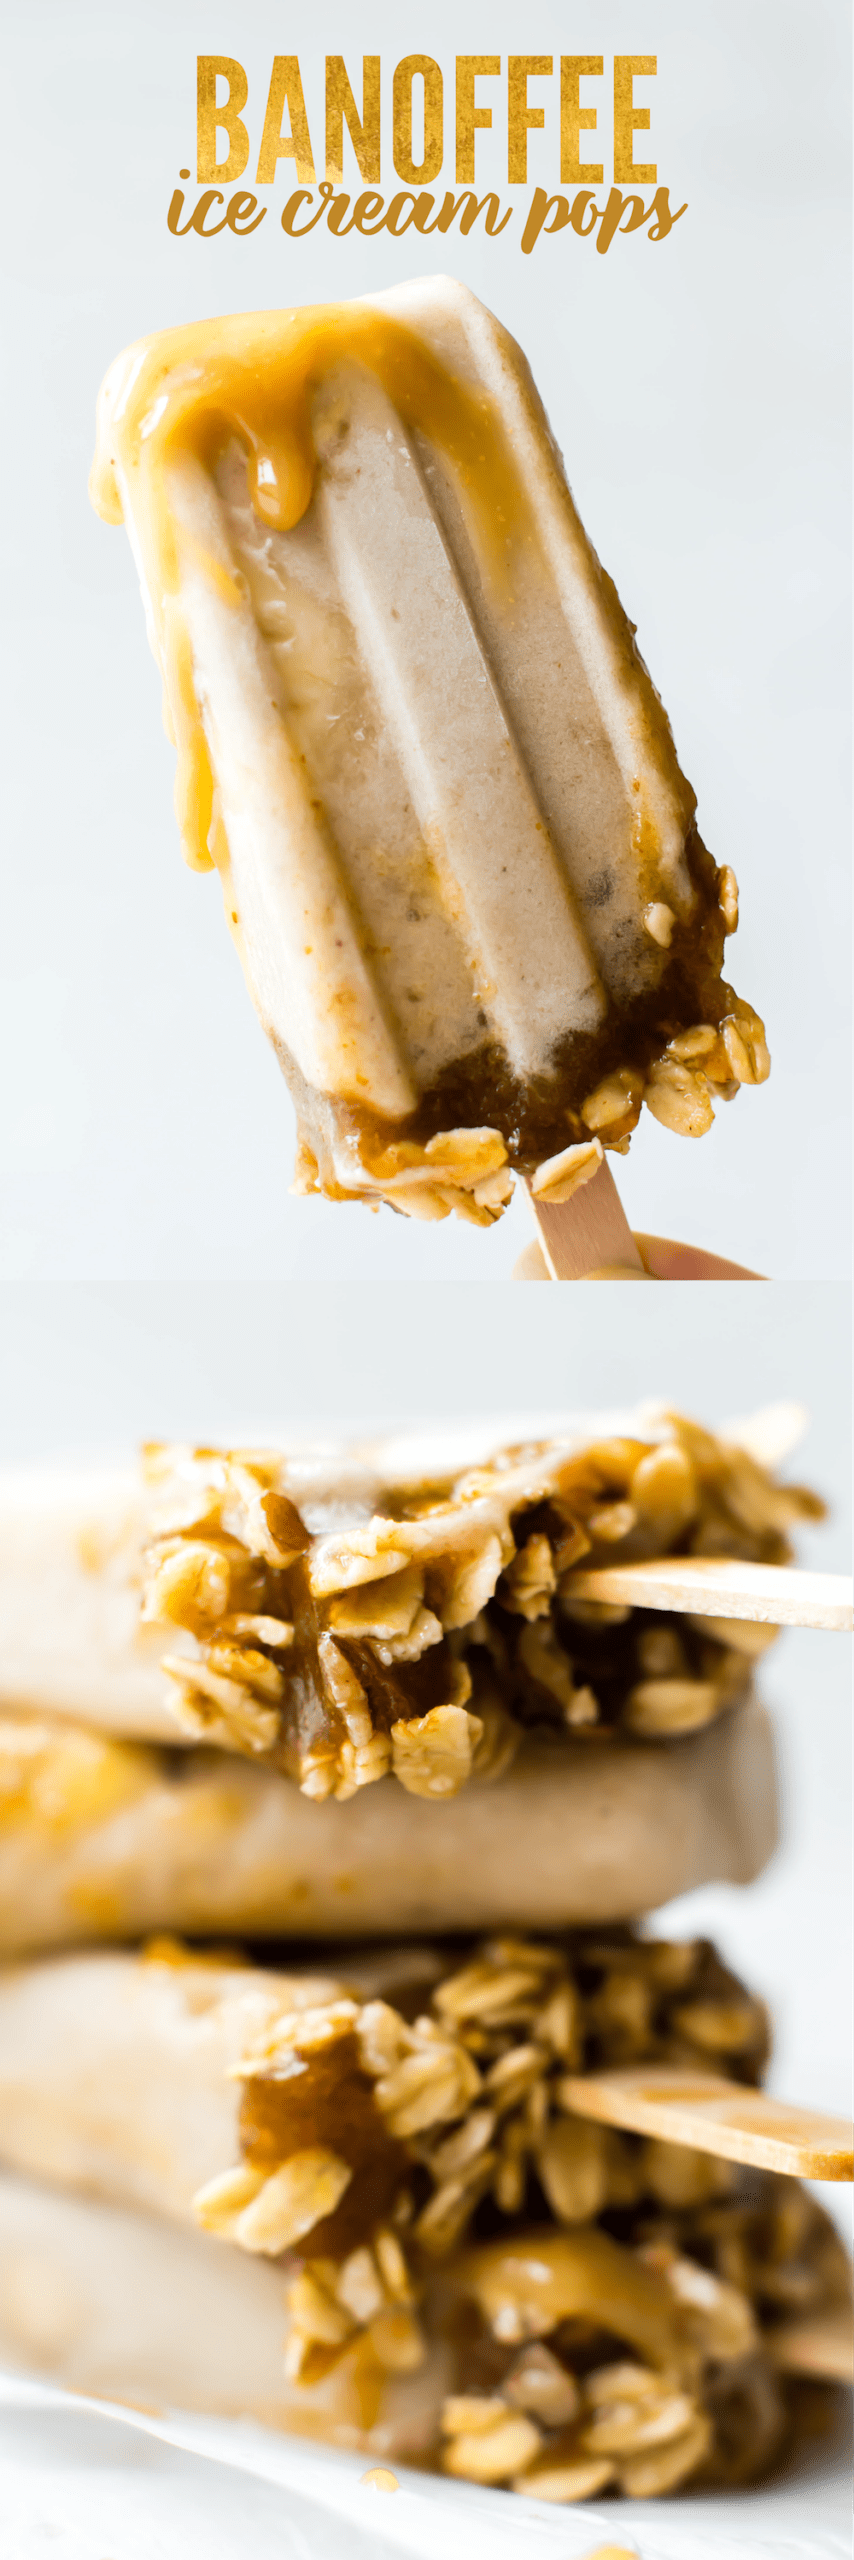 Pie turns popsicle with these Banoffee Ice Cream Pops featuring banana ice cream and homemade healthy